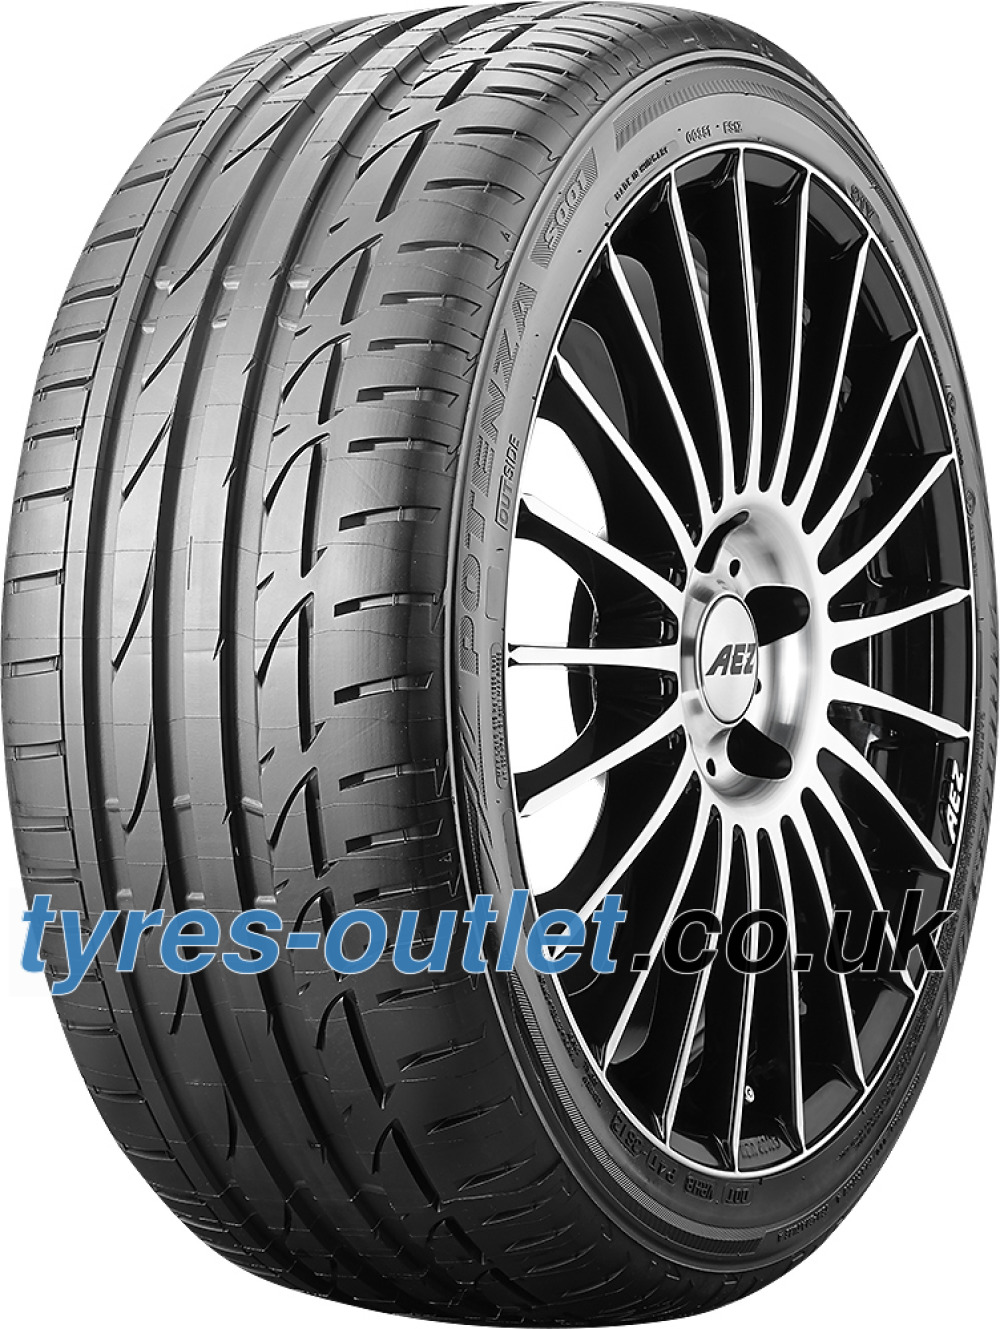 Bridgestone Potenza S001 ( 255/45 R18 99Y with rim protection (MFS) )